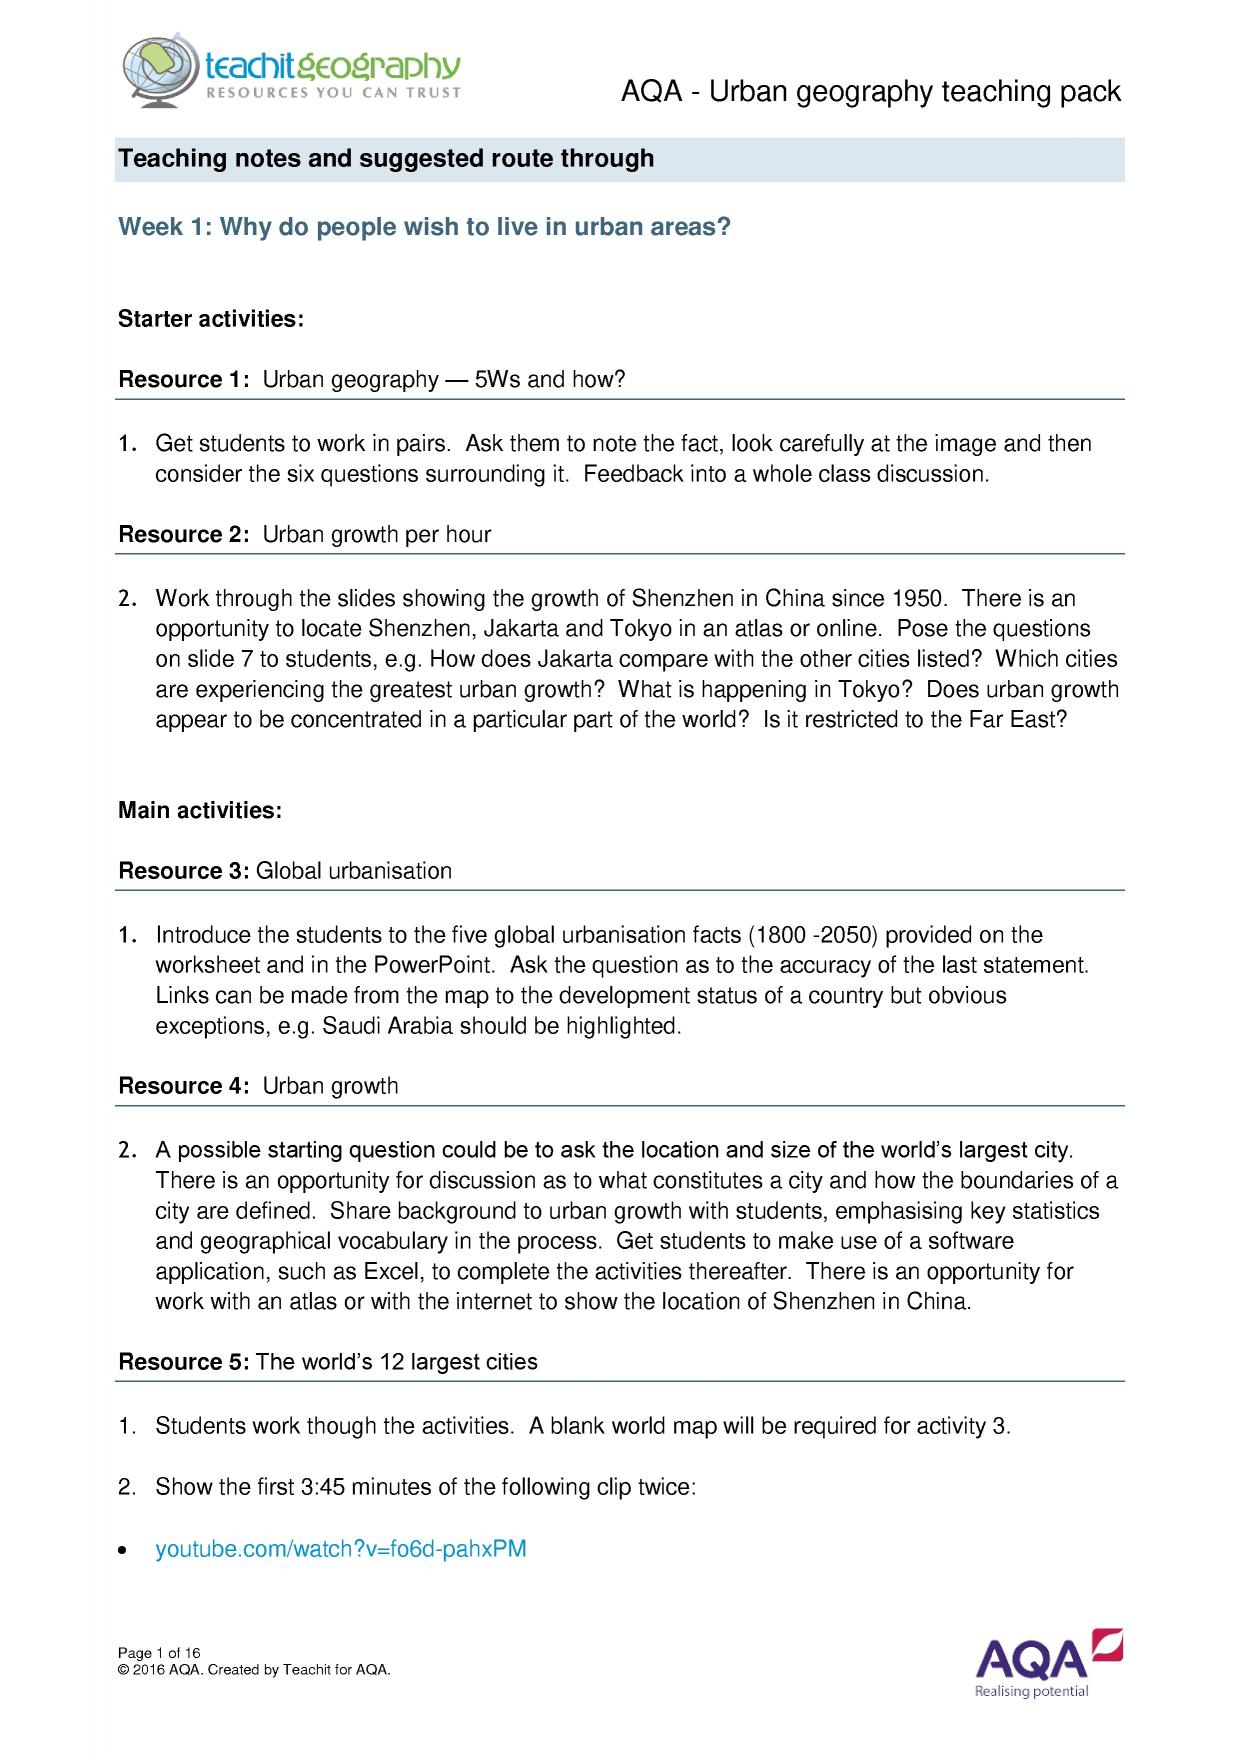 Aqa urban geography teaching pack notes for teachers urban aqa urban geography teaching pack notes for teachers urban geography gcse teaching pack gumiabroncs Gallery